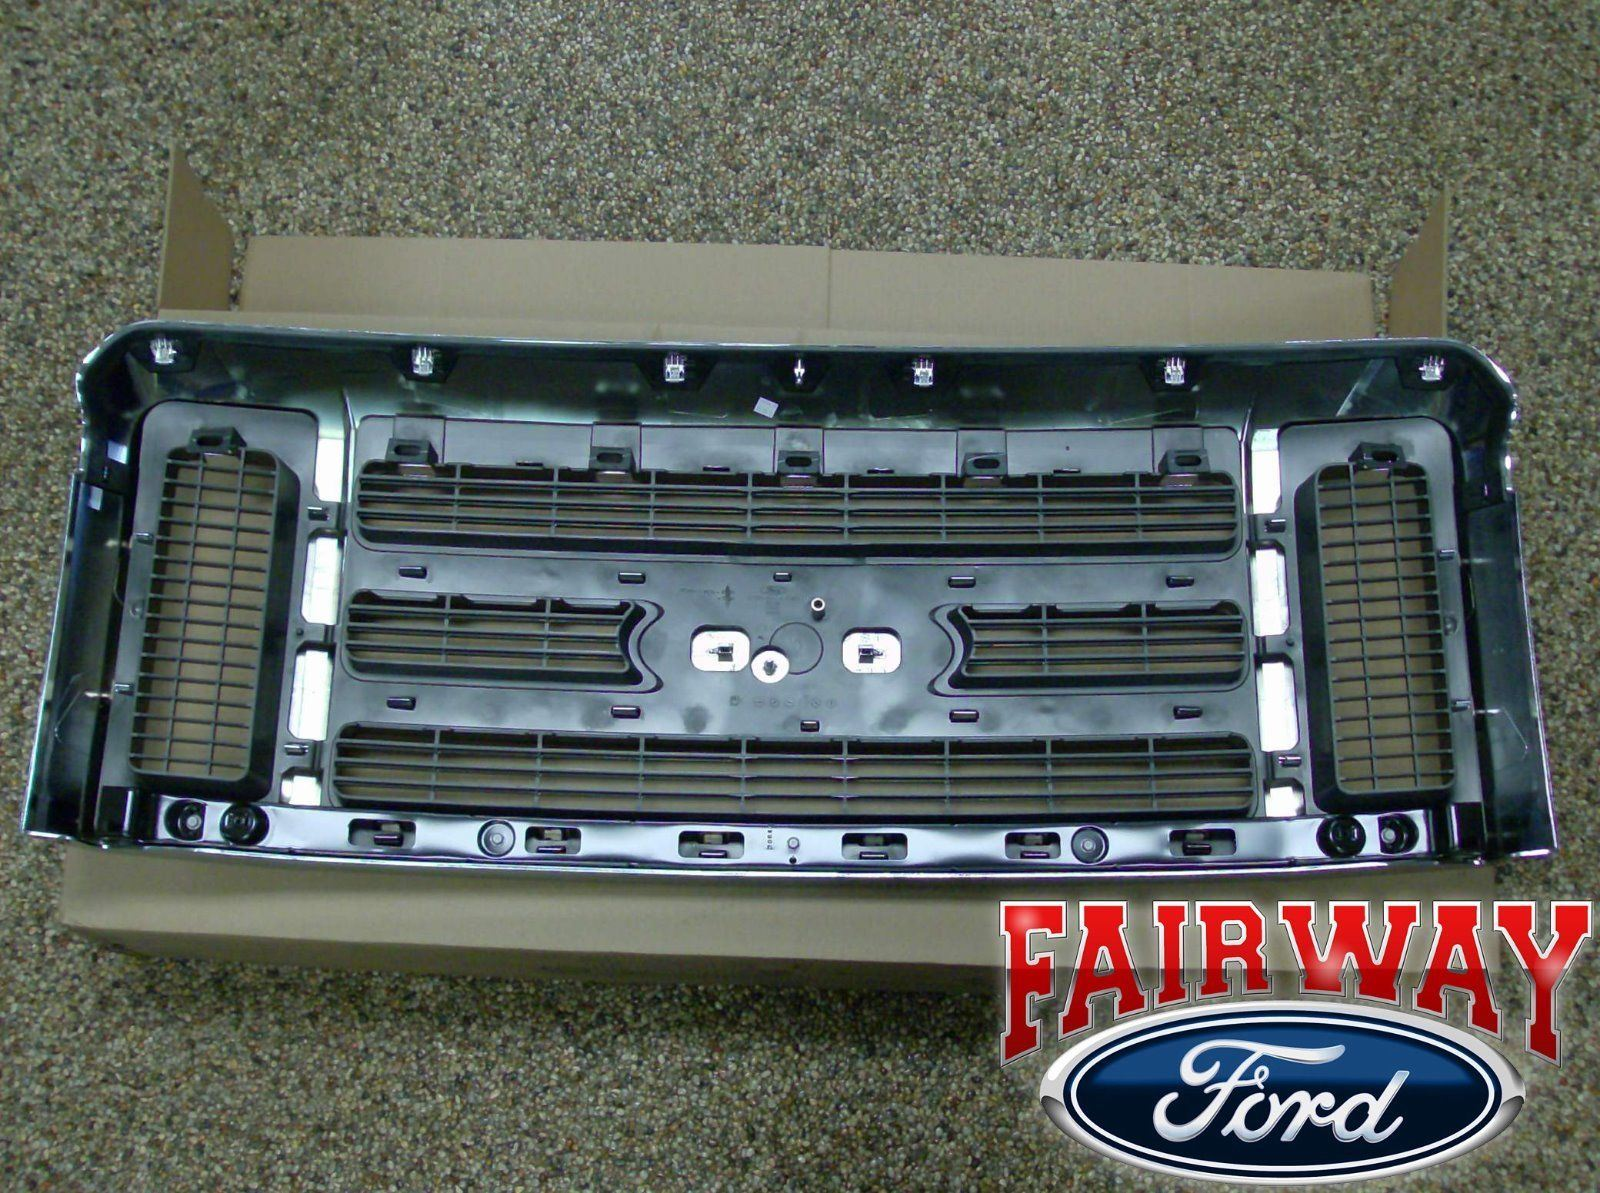 Please check out our ebay store for genuine ford parts and accessories